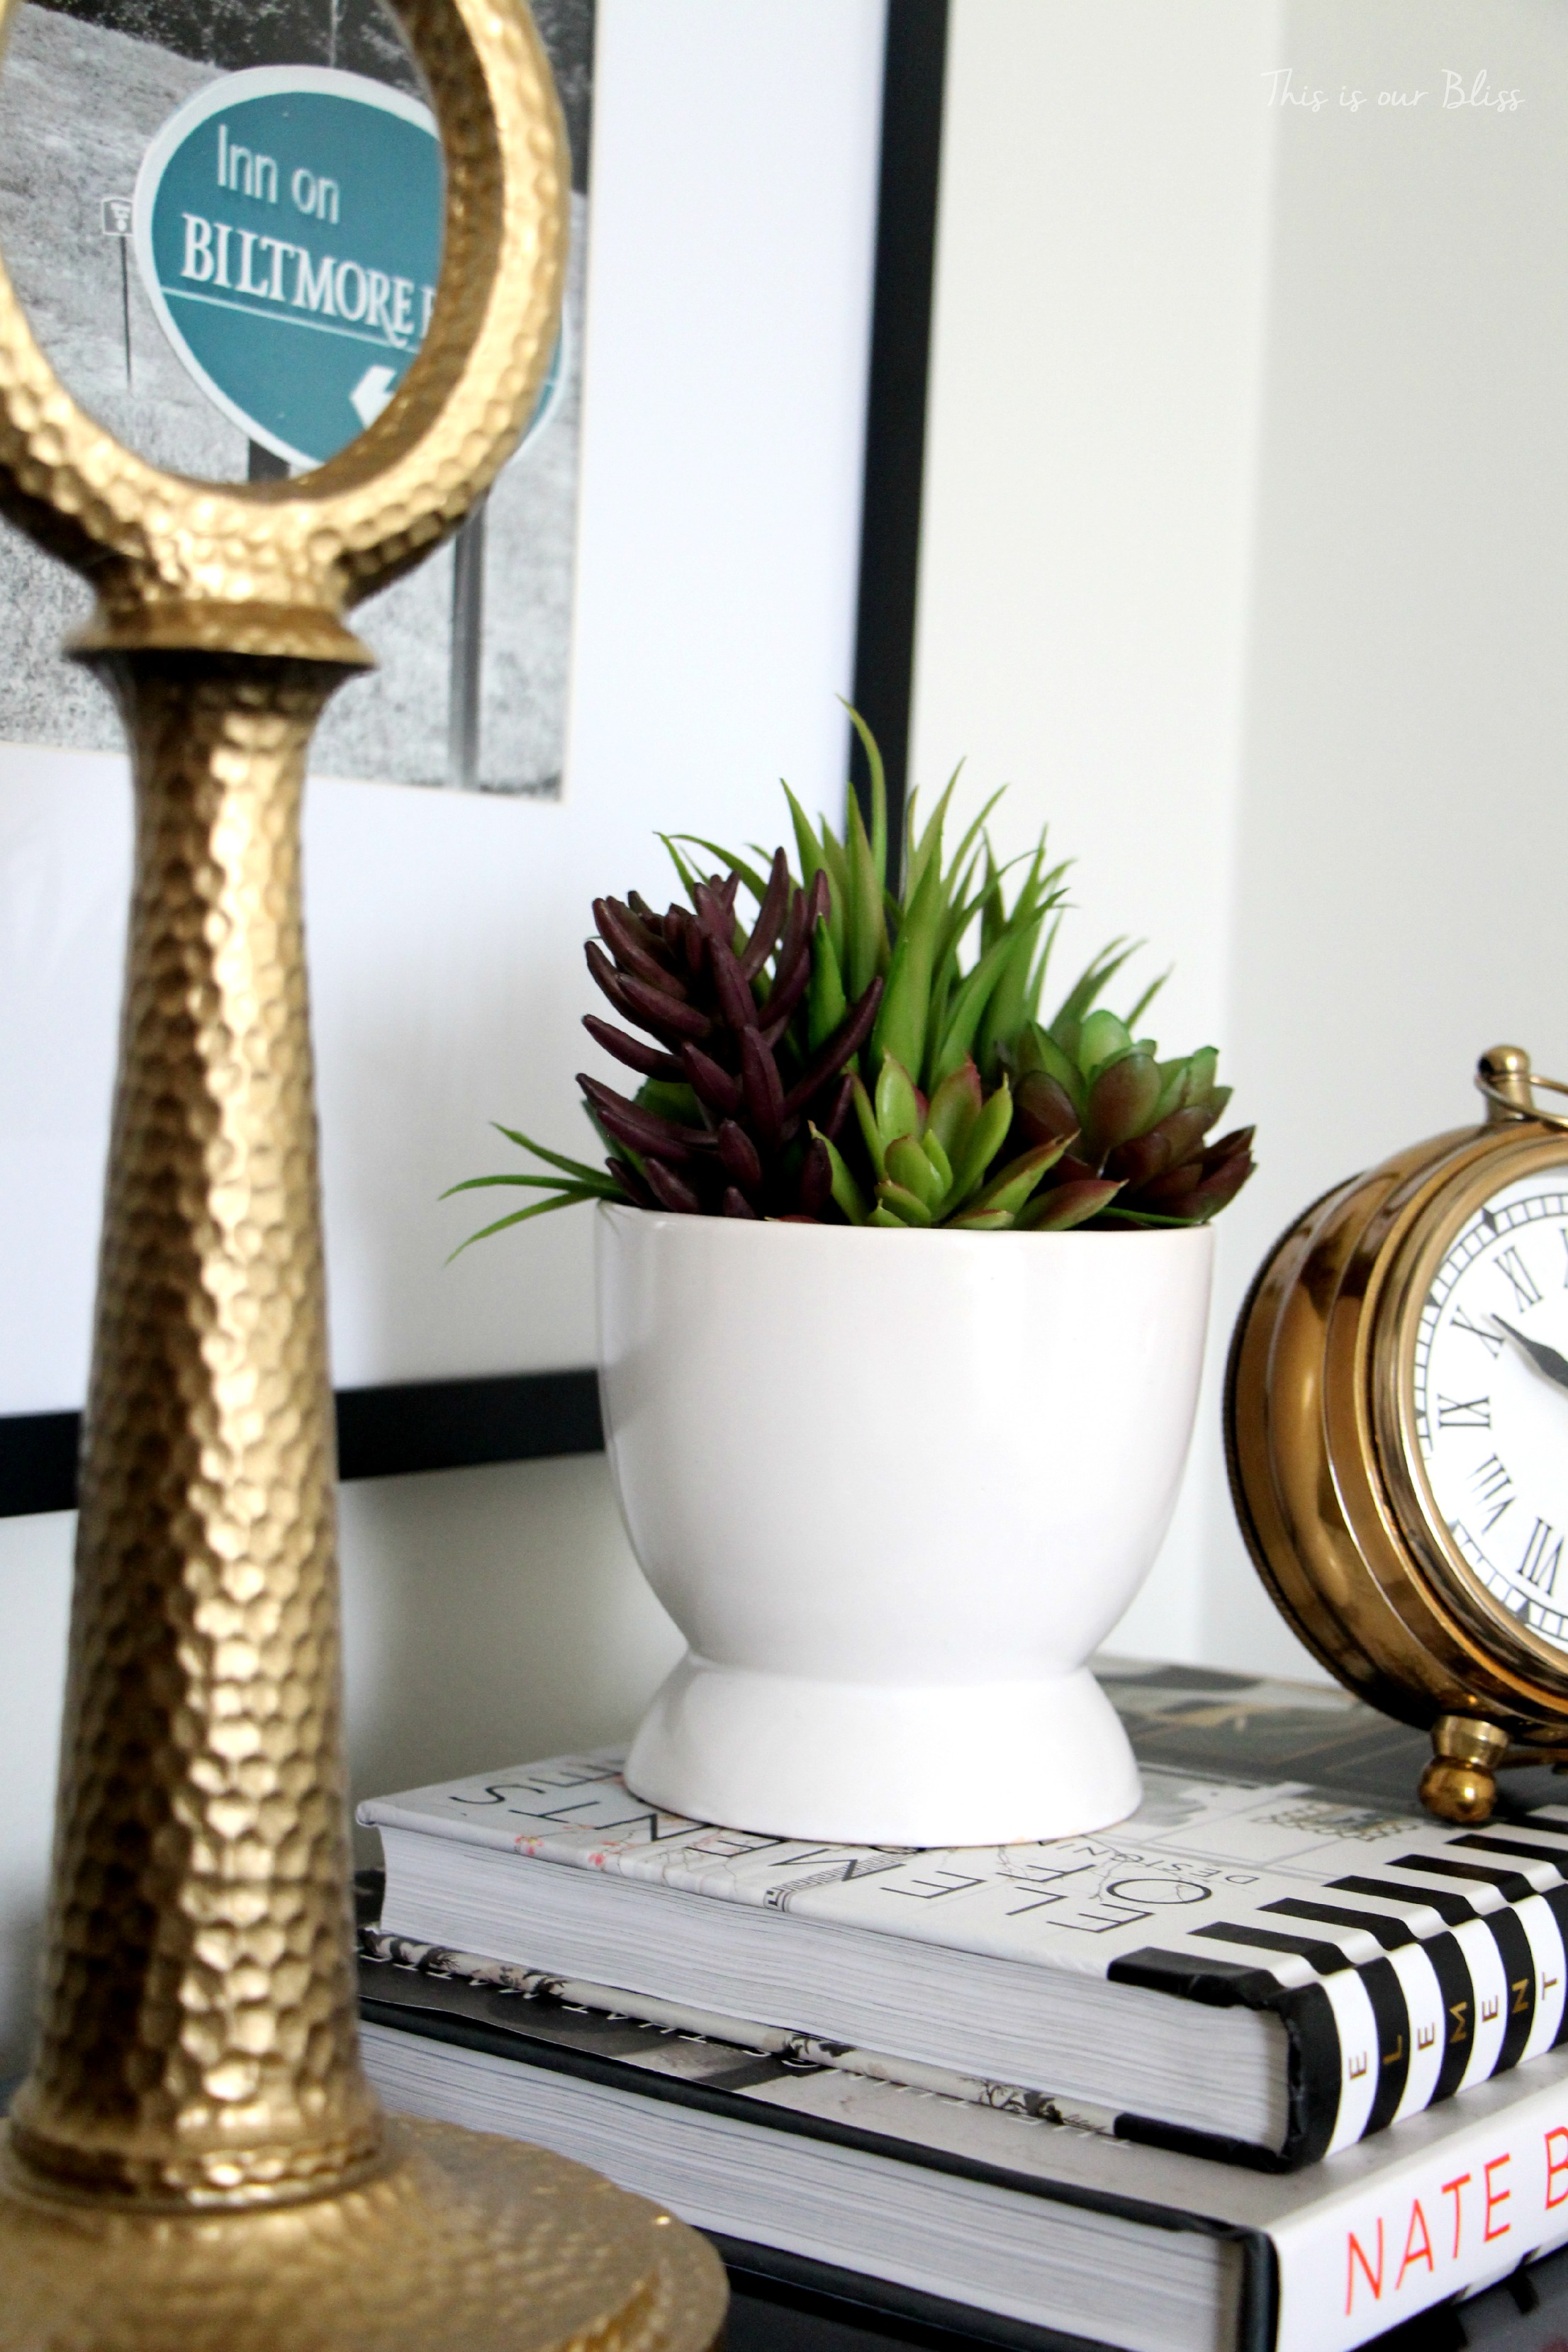 Bedside Table Clocks Our Current Home Tour This Is Our Bliss